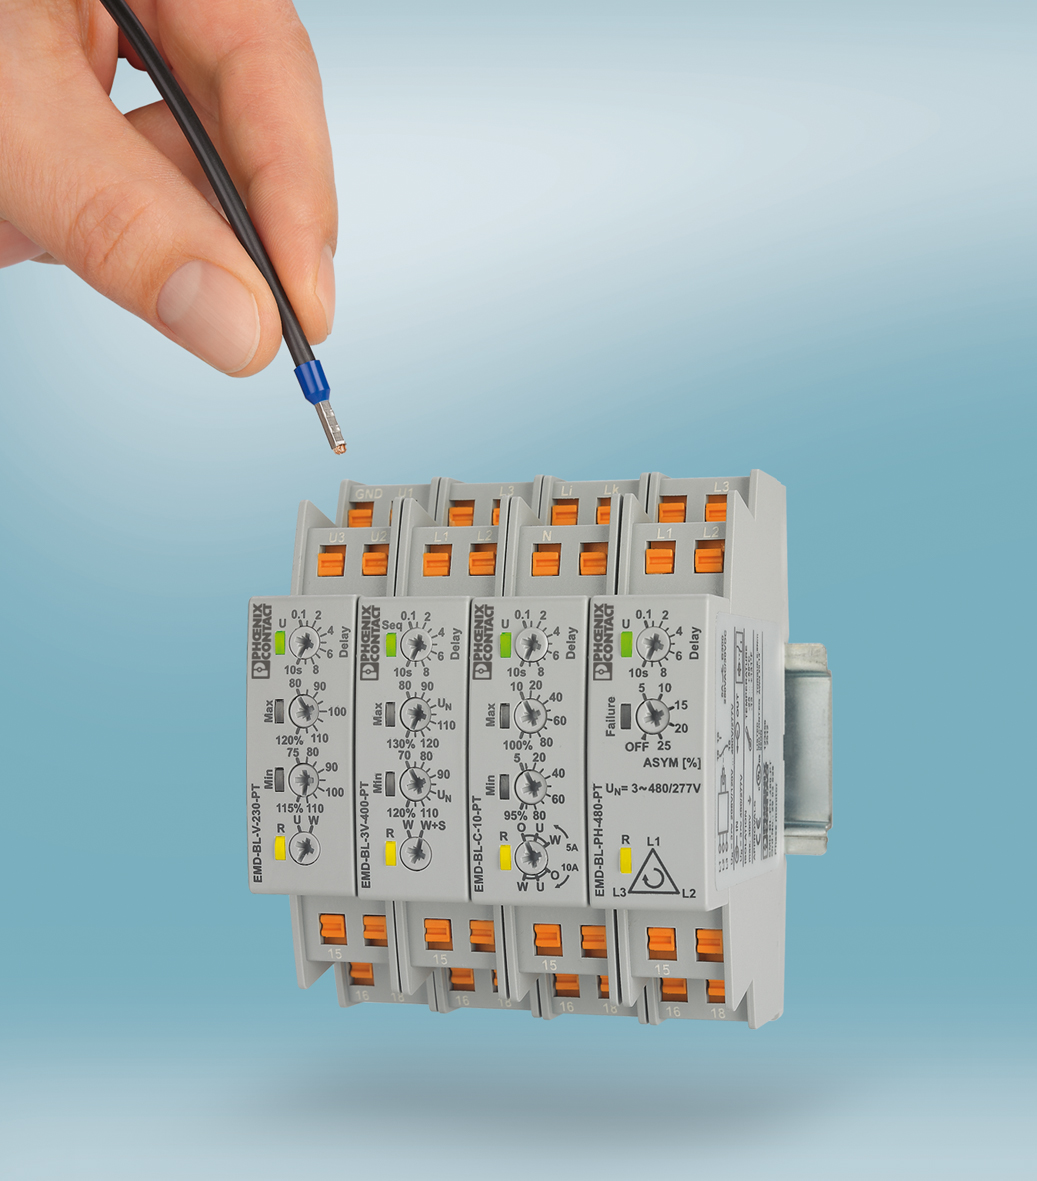 Compact monitoring relays for quick wiring | South East Asia on